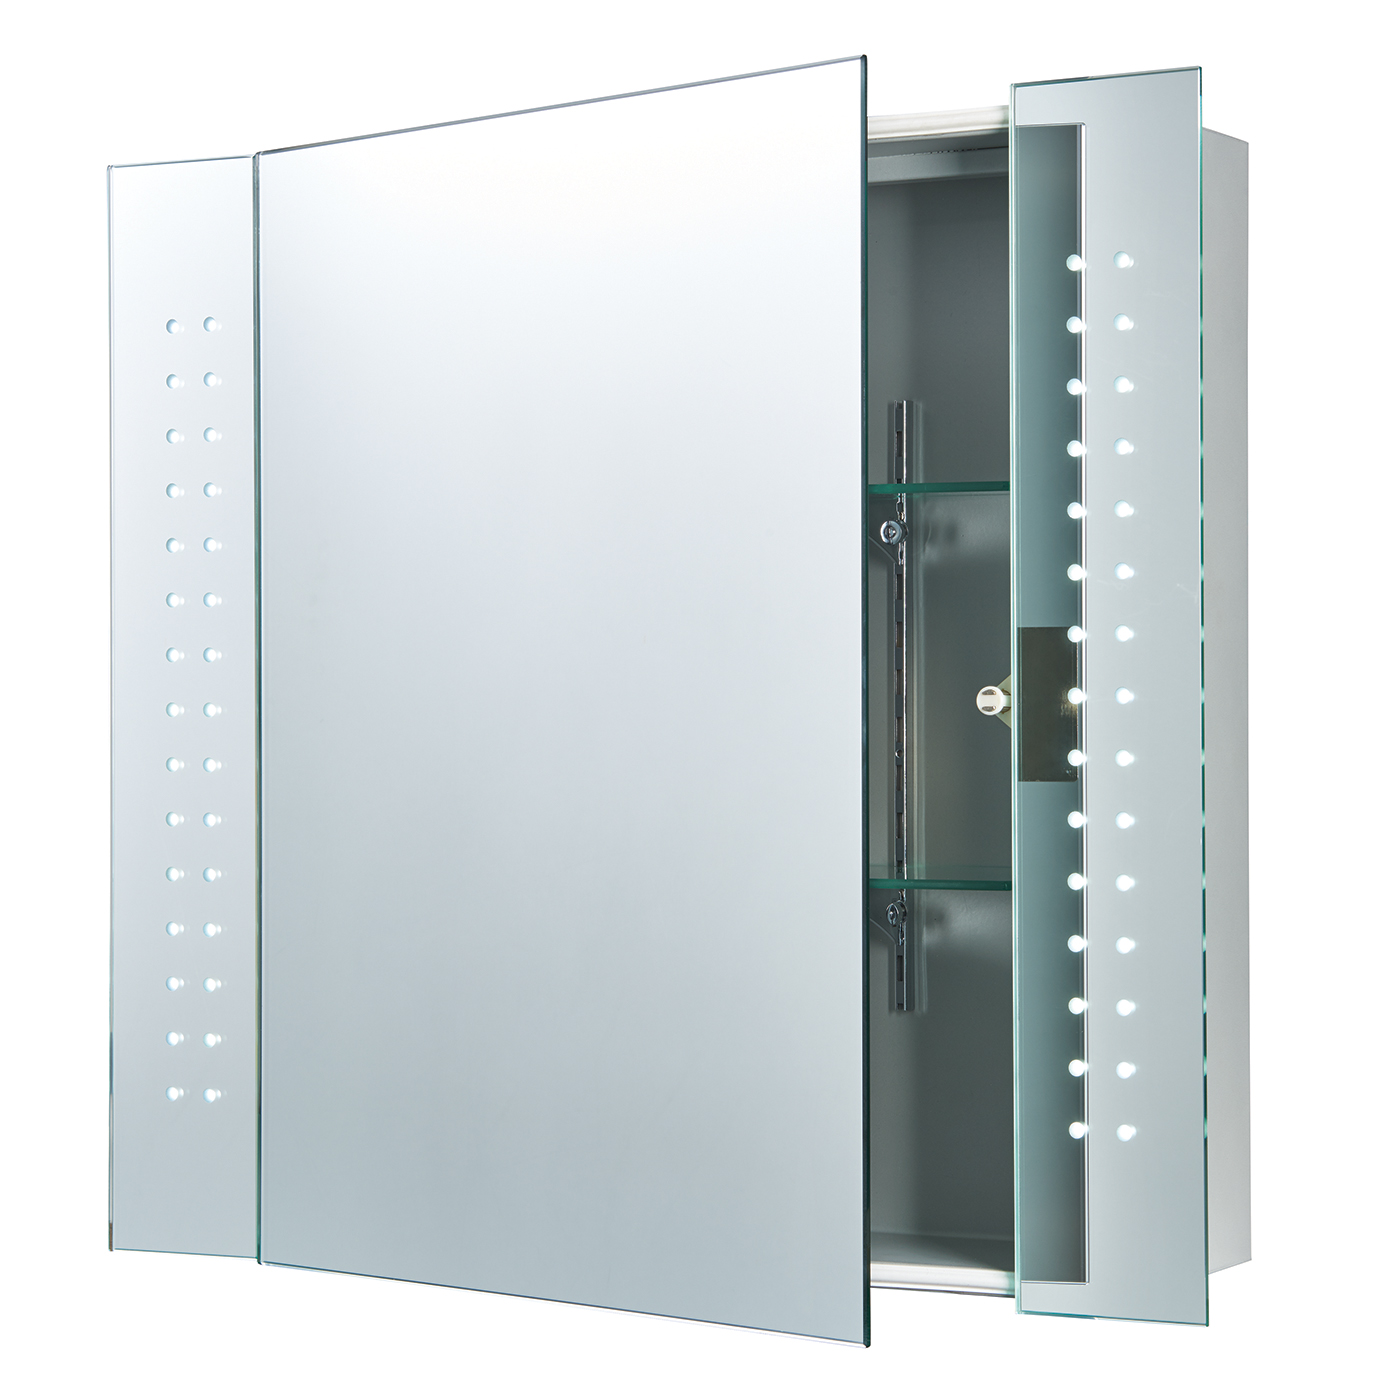 details about endon revelo led shaver bathroom mirror cabinet ip44 5w